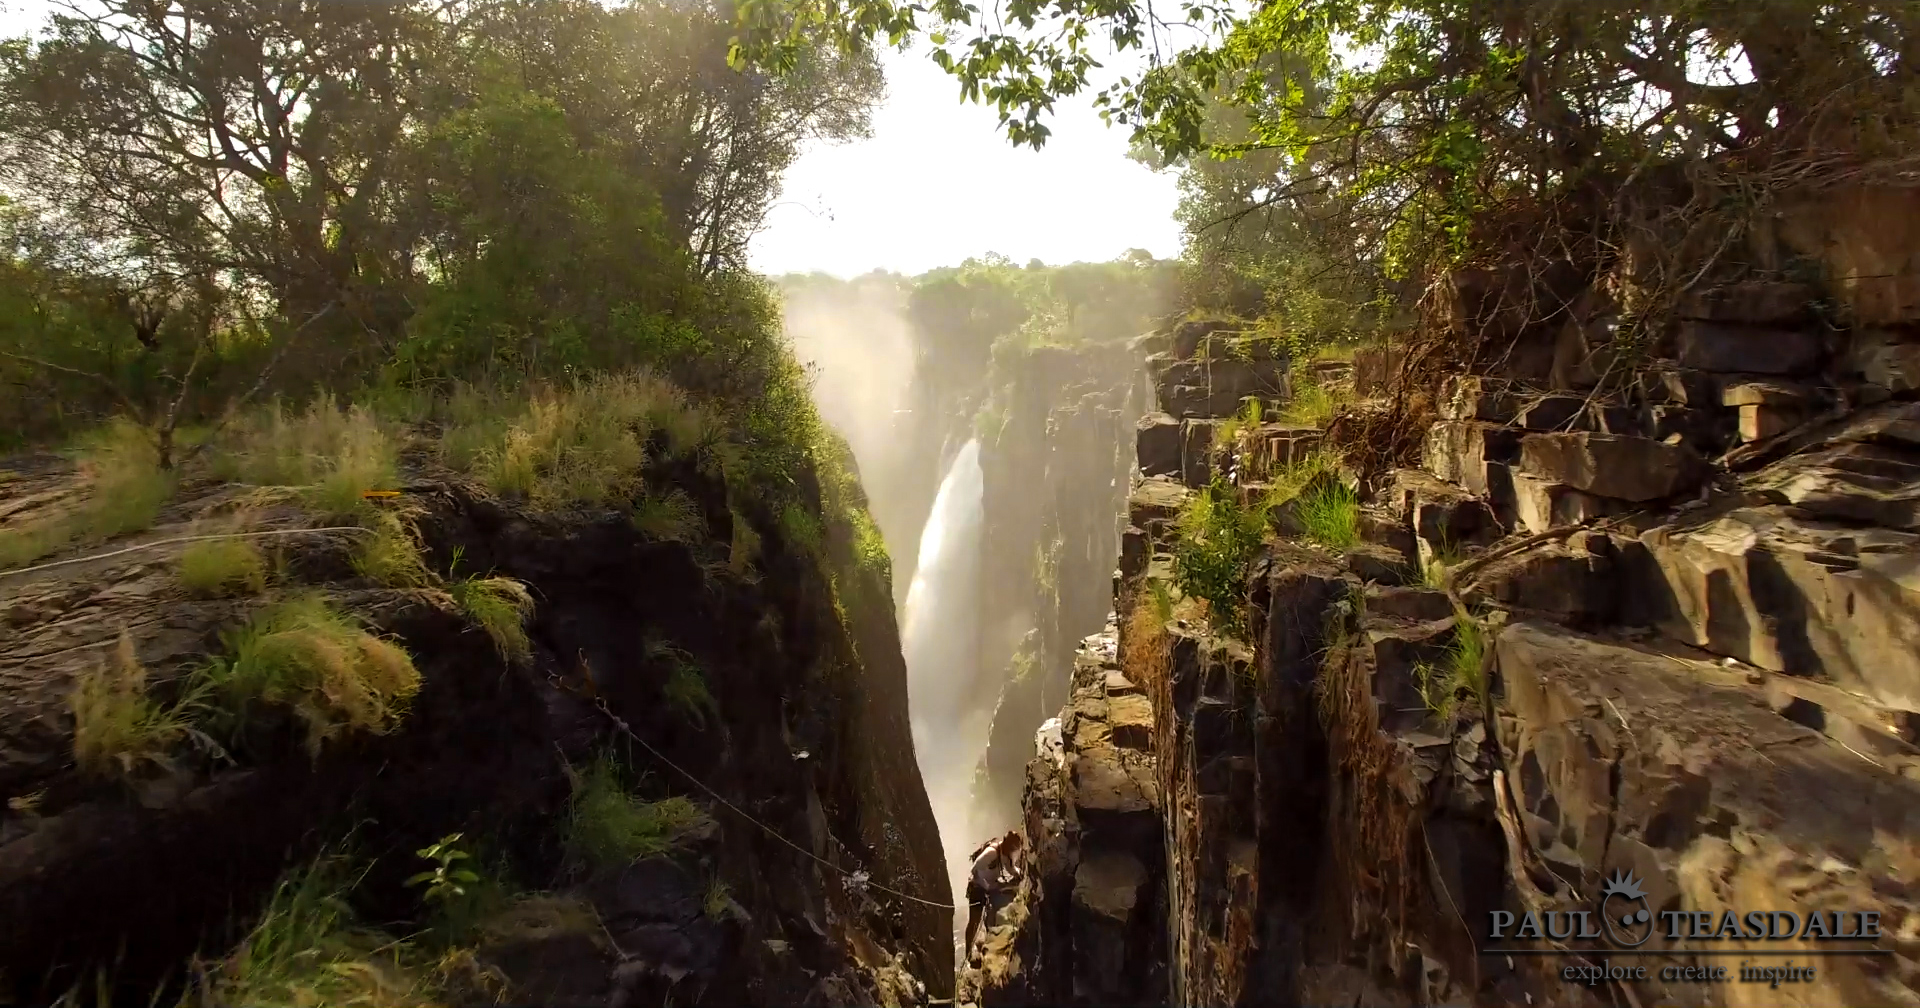 Paul Teasdale descends the crack where the Victoria Falls is cutting back with the Devil's Cataract in the bacground